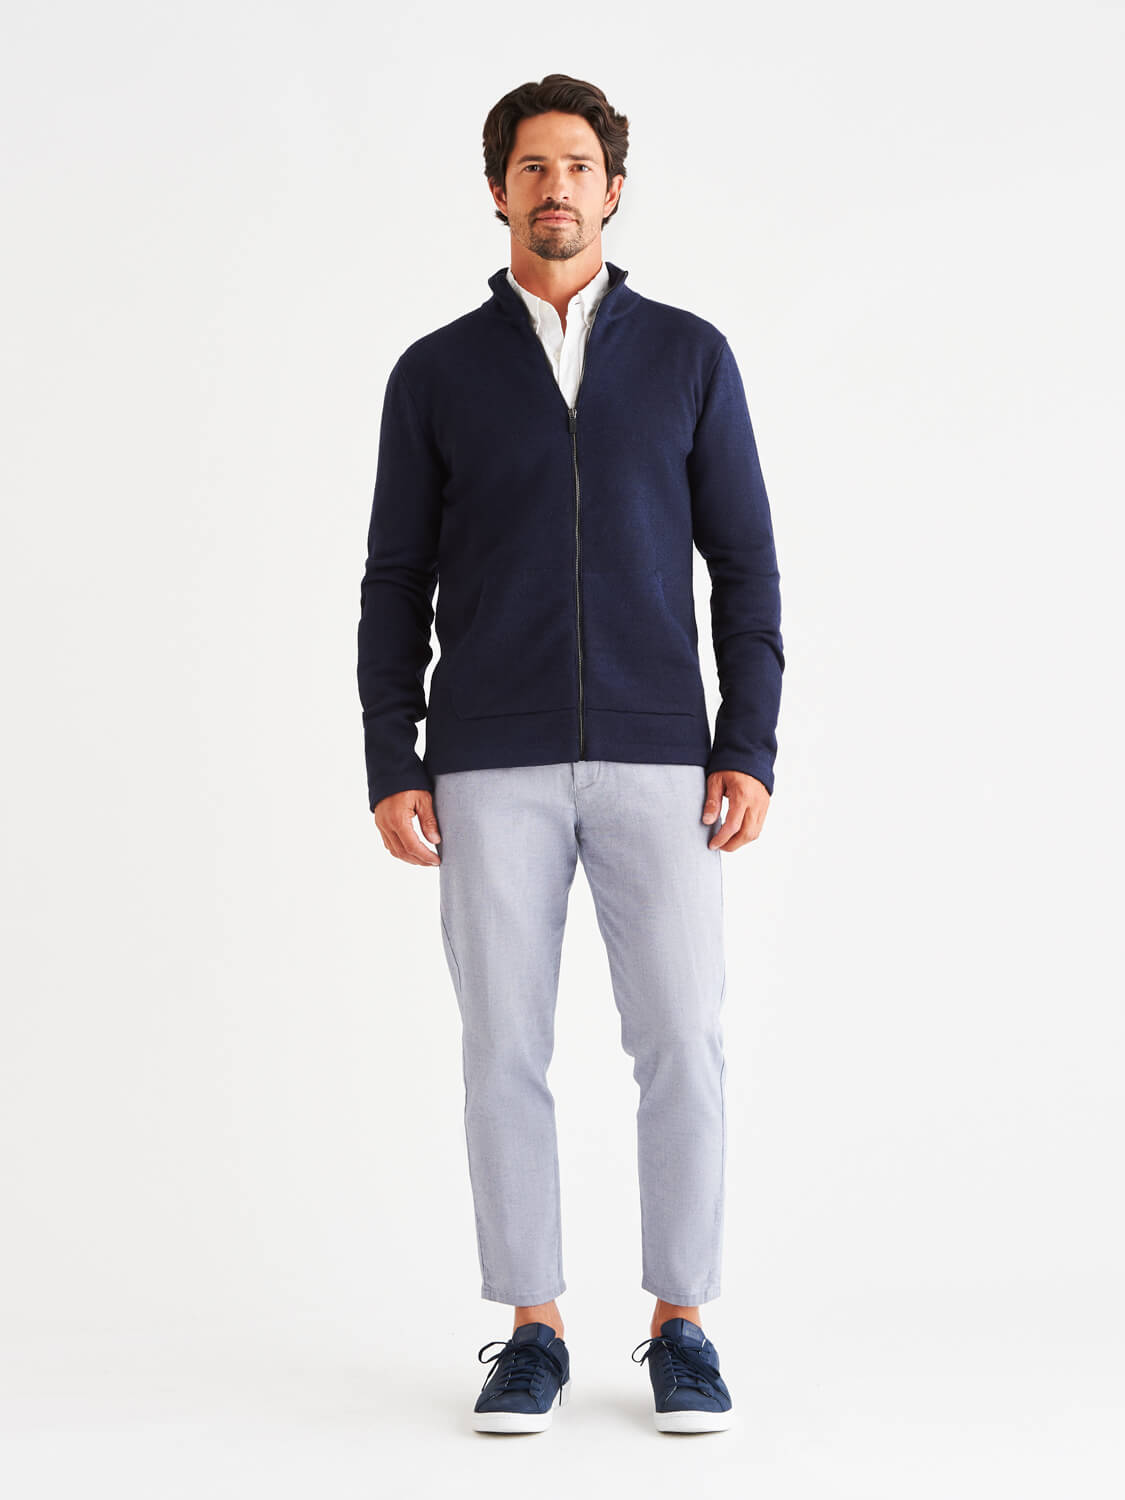 Sidney LuxCore™ Cashmere Zip Sweater